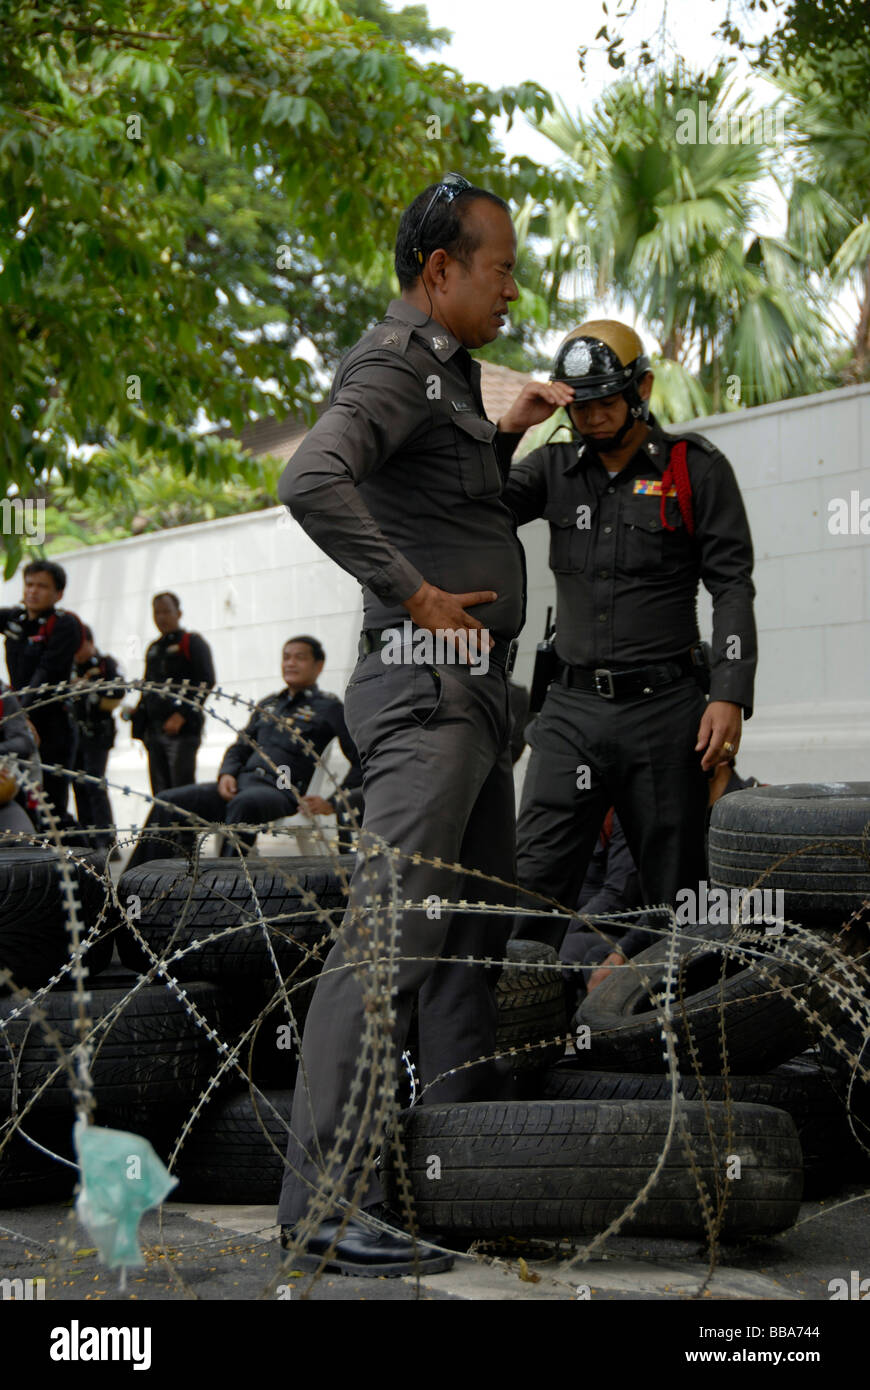 Demonstration, police standing at roadblock of barbed wire and car tires, Bangkok, Thailand, Southeast Asia - Stock Image